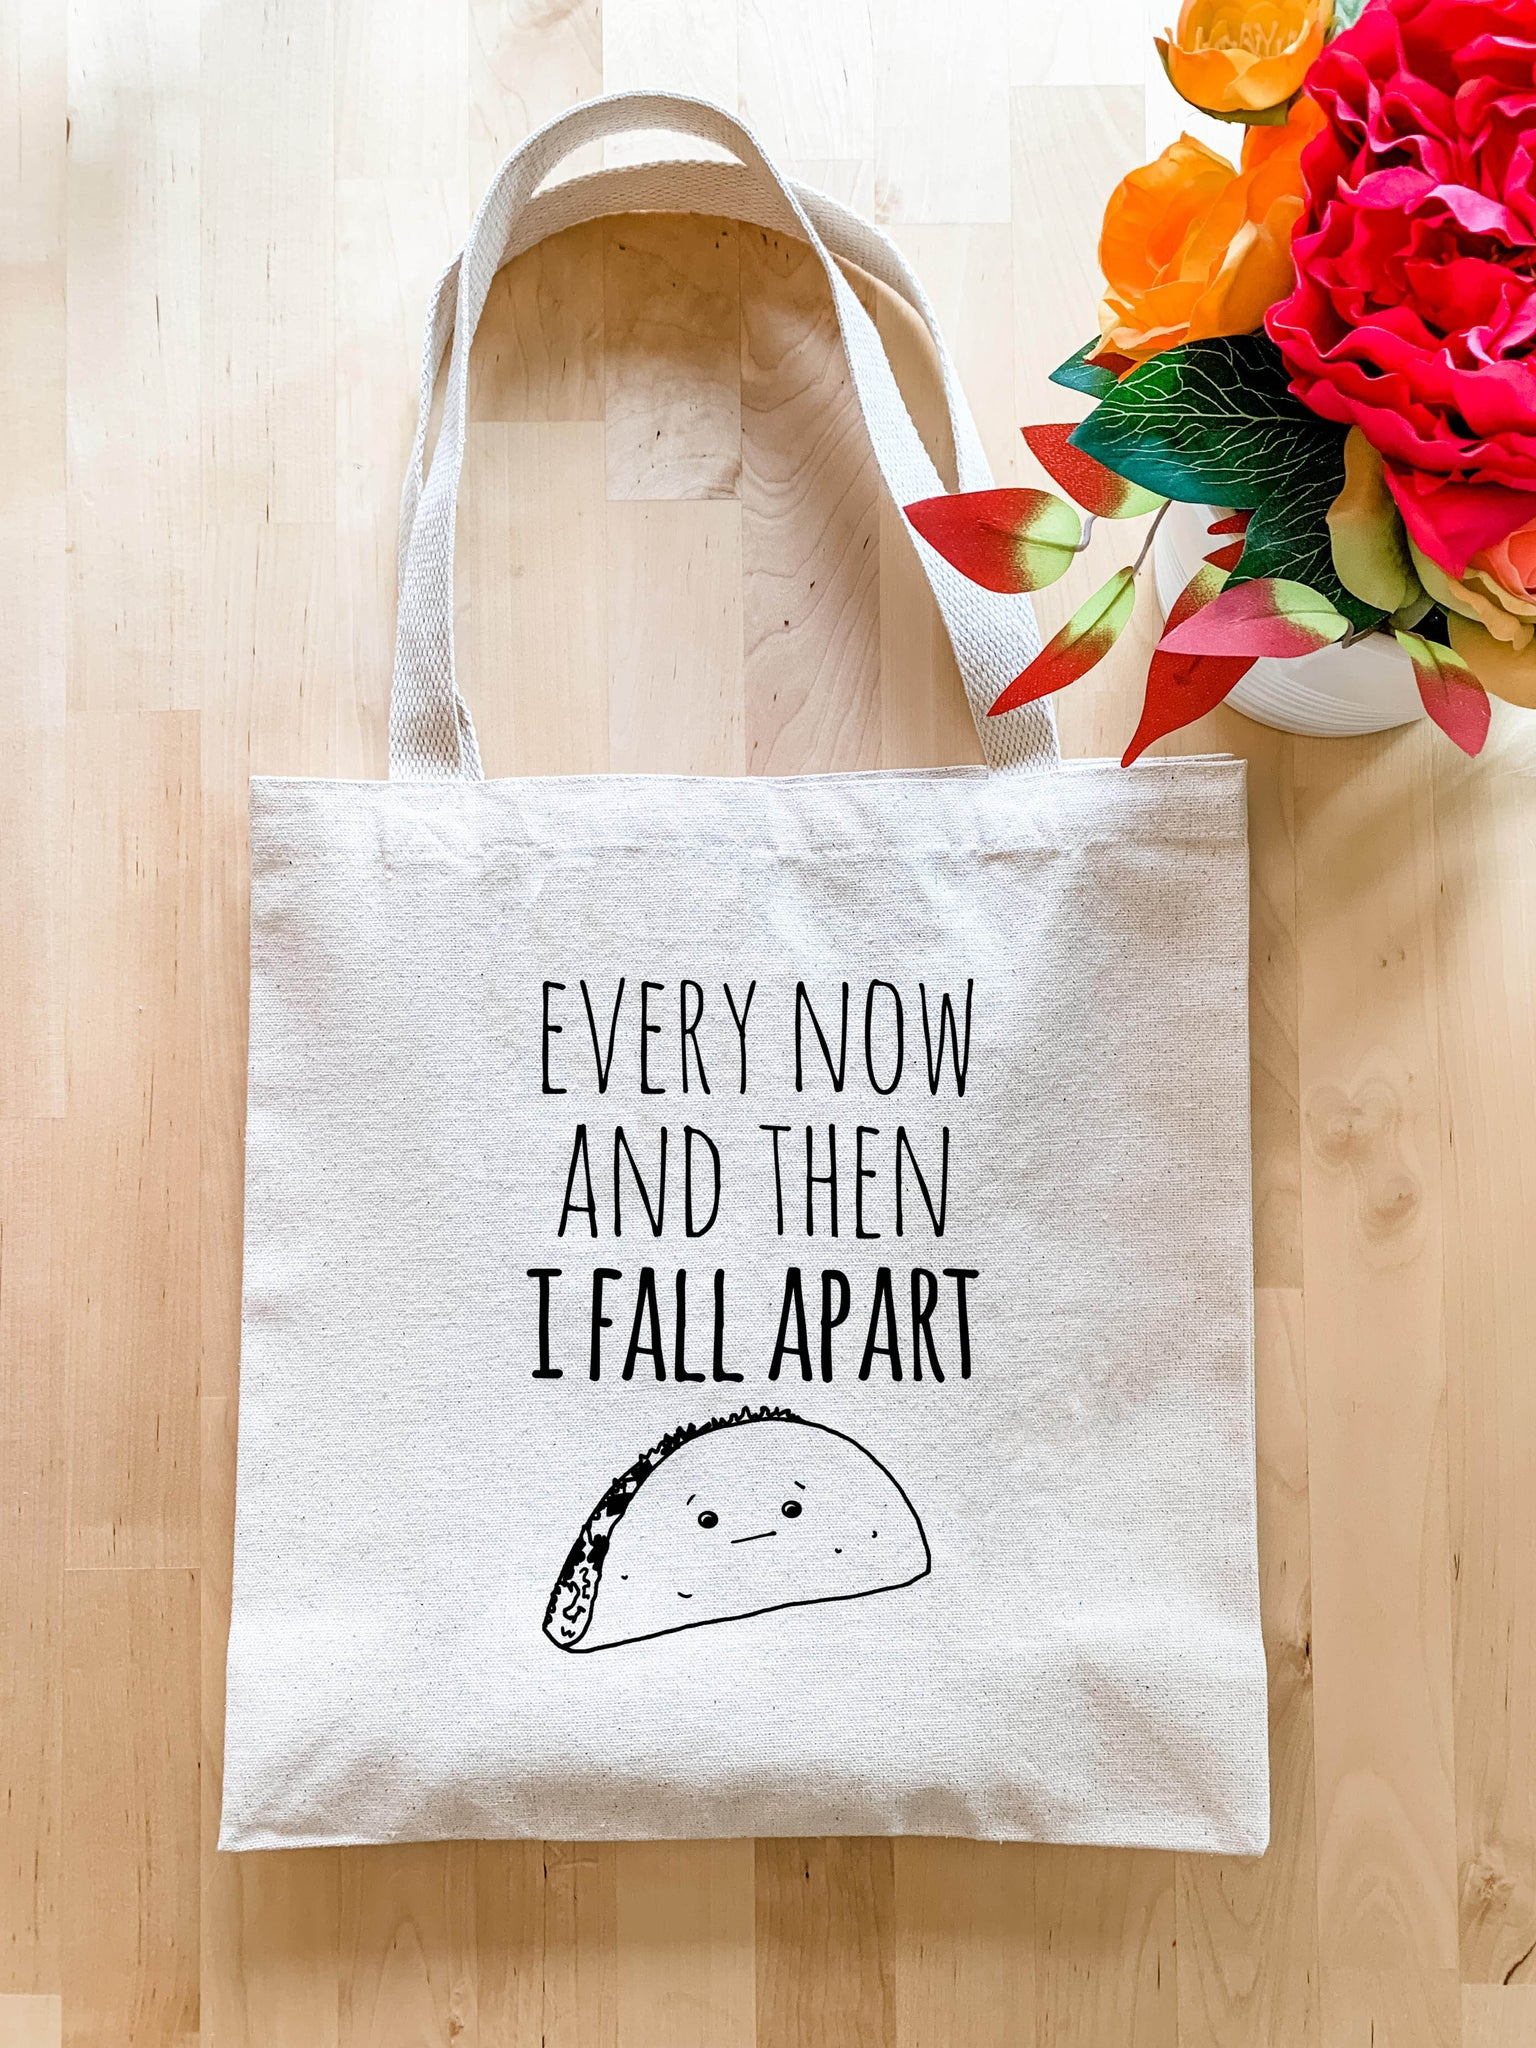 Every Now And Then I Fall Apart - Tote Bag - MoonlightMakers